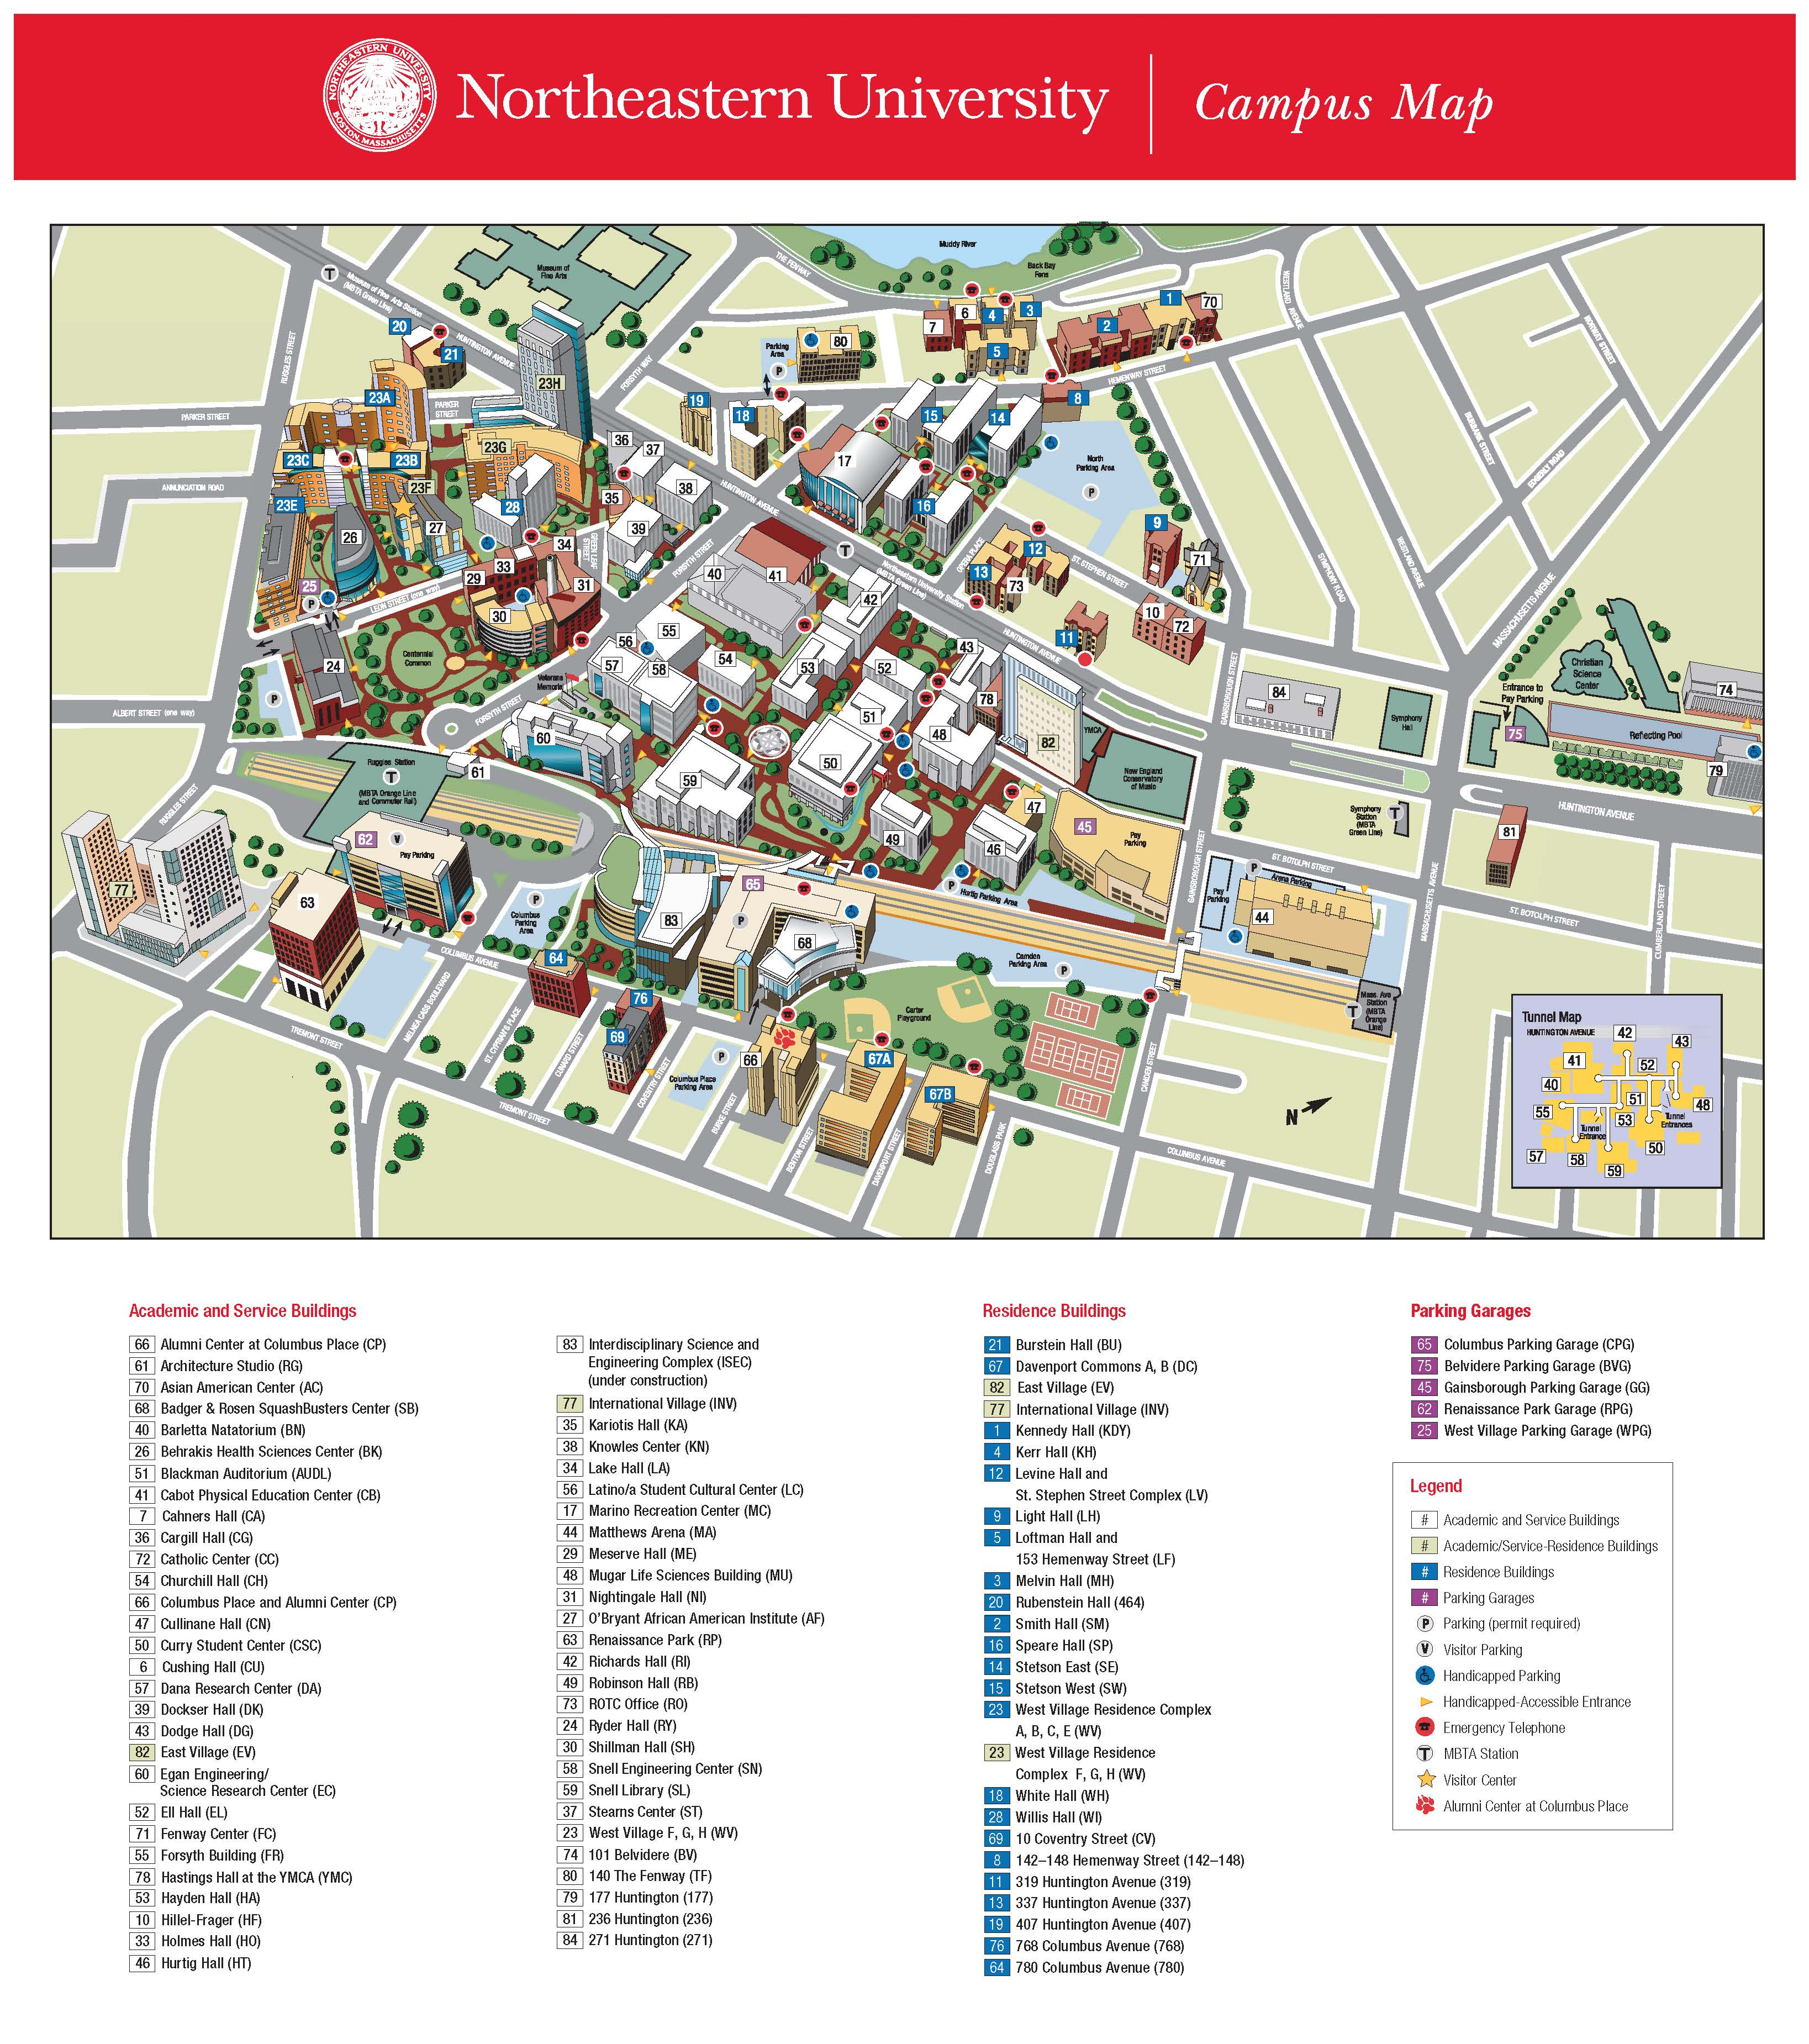 Campus Map Displying campus buildings including Ell Hall, Curry Student Center and Blackman Auditorium